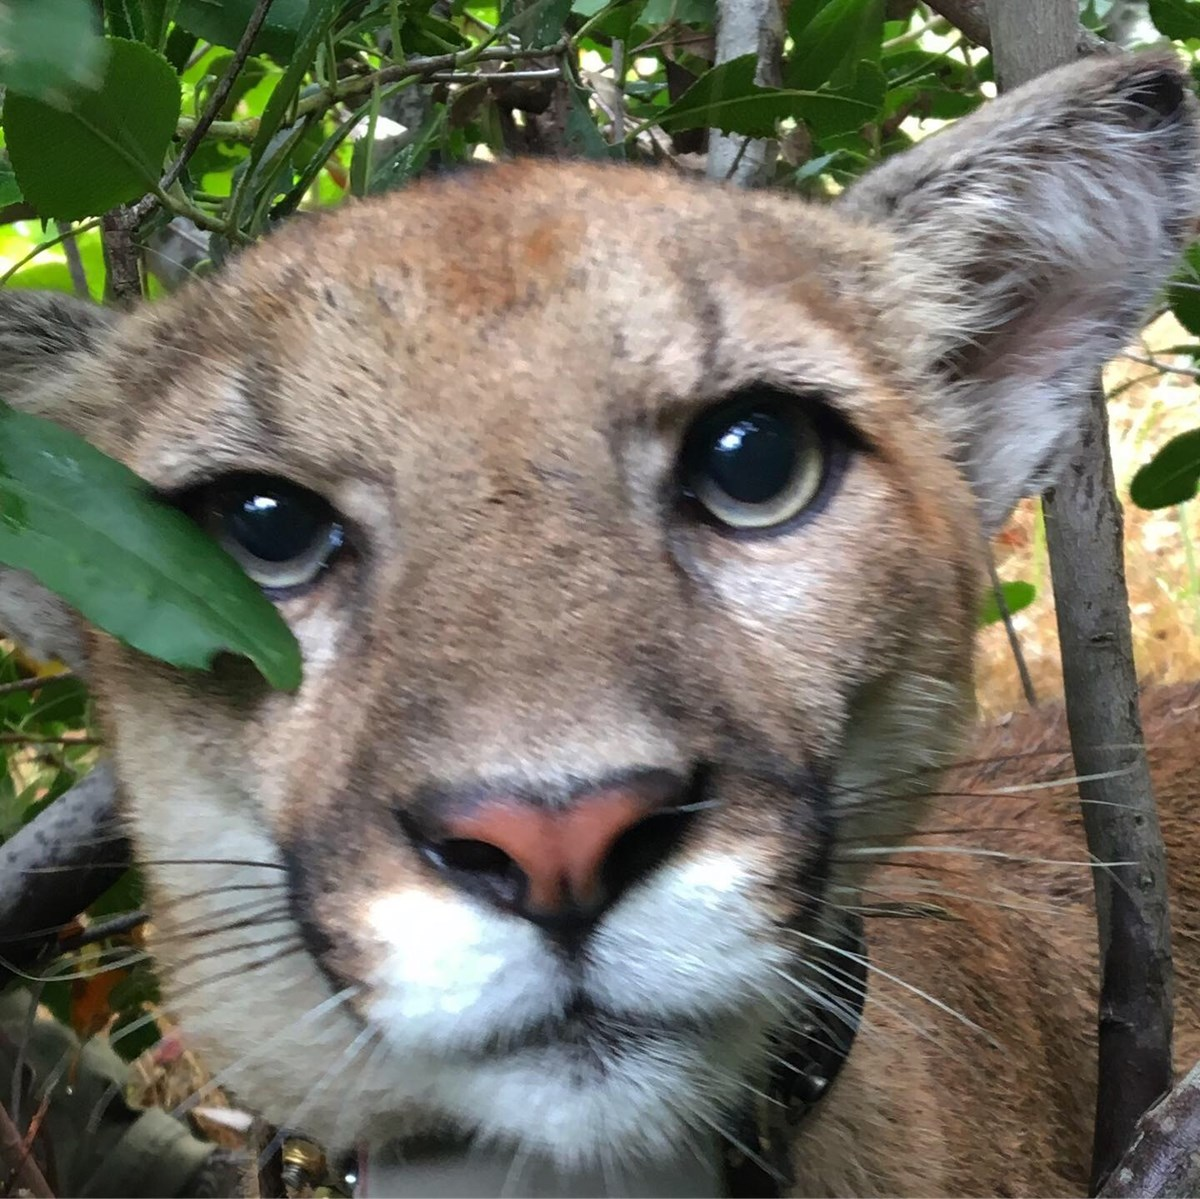 P-75 mountain lion